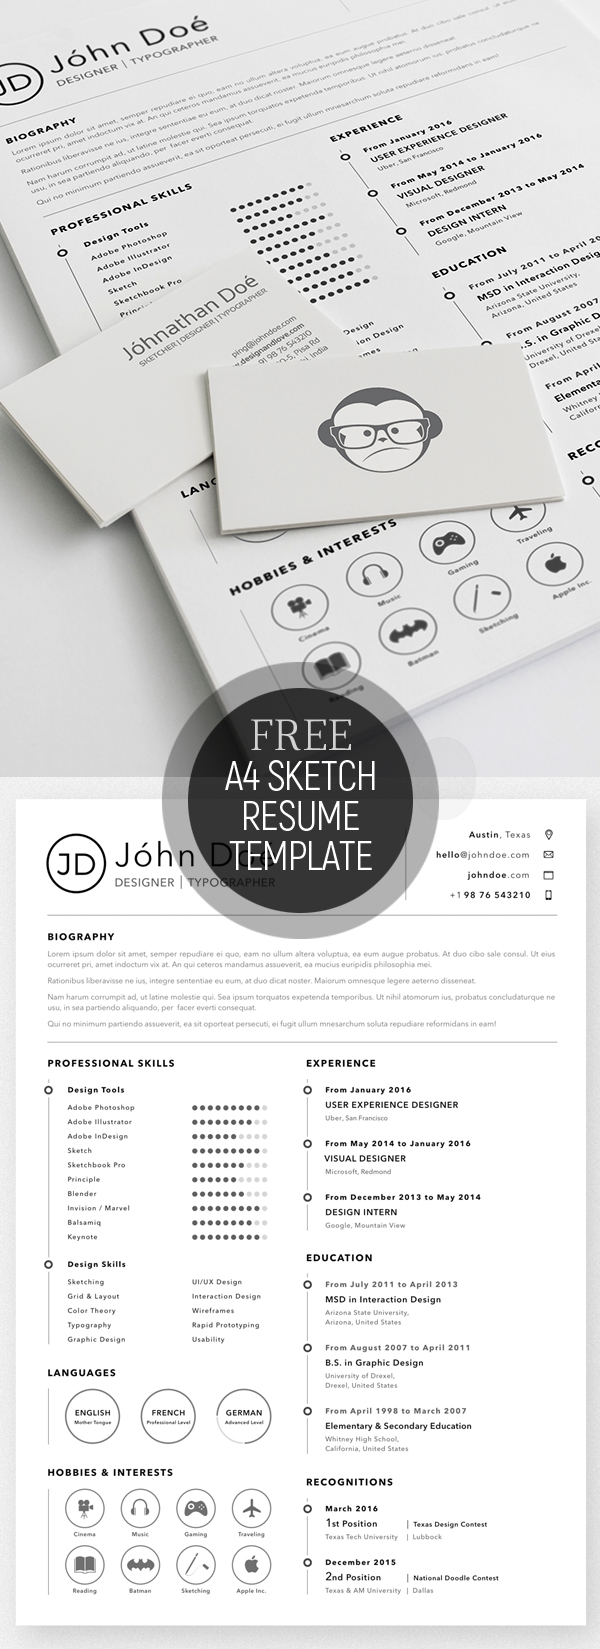 Template Of A Resume 50 Free Cv Resume Templates Best For 2019 Design Graphic